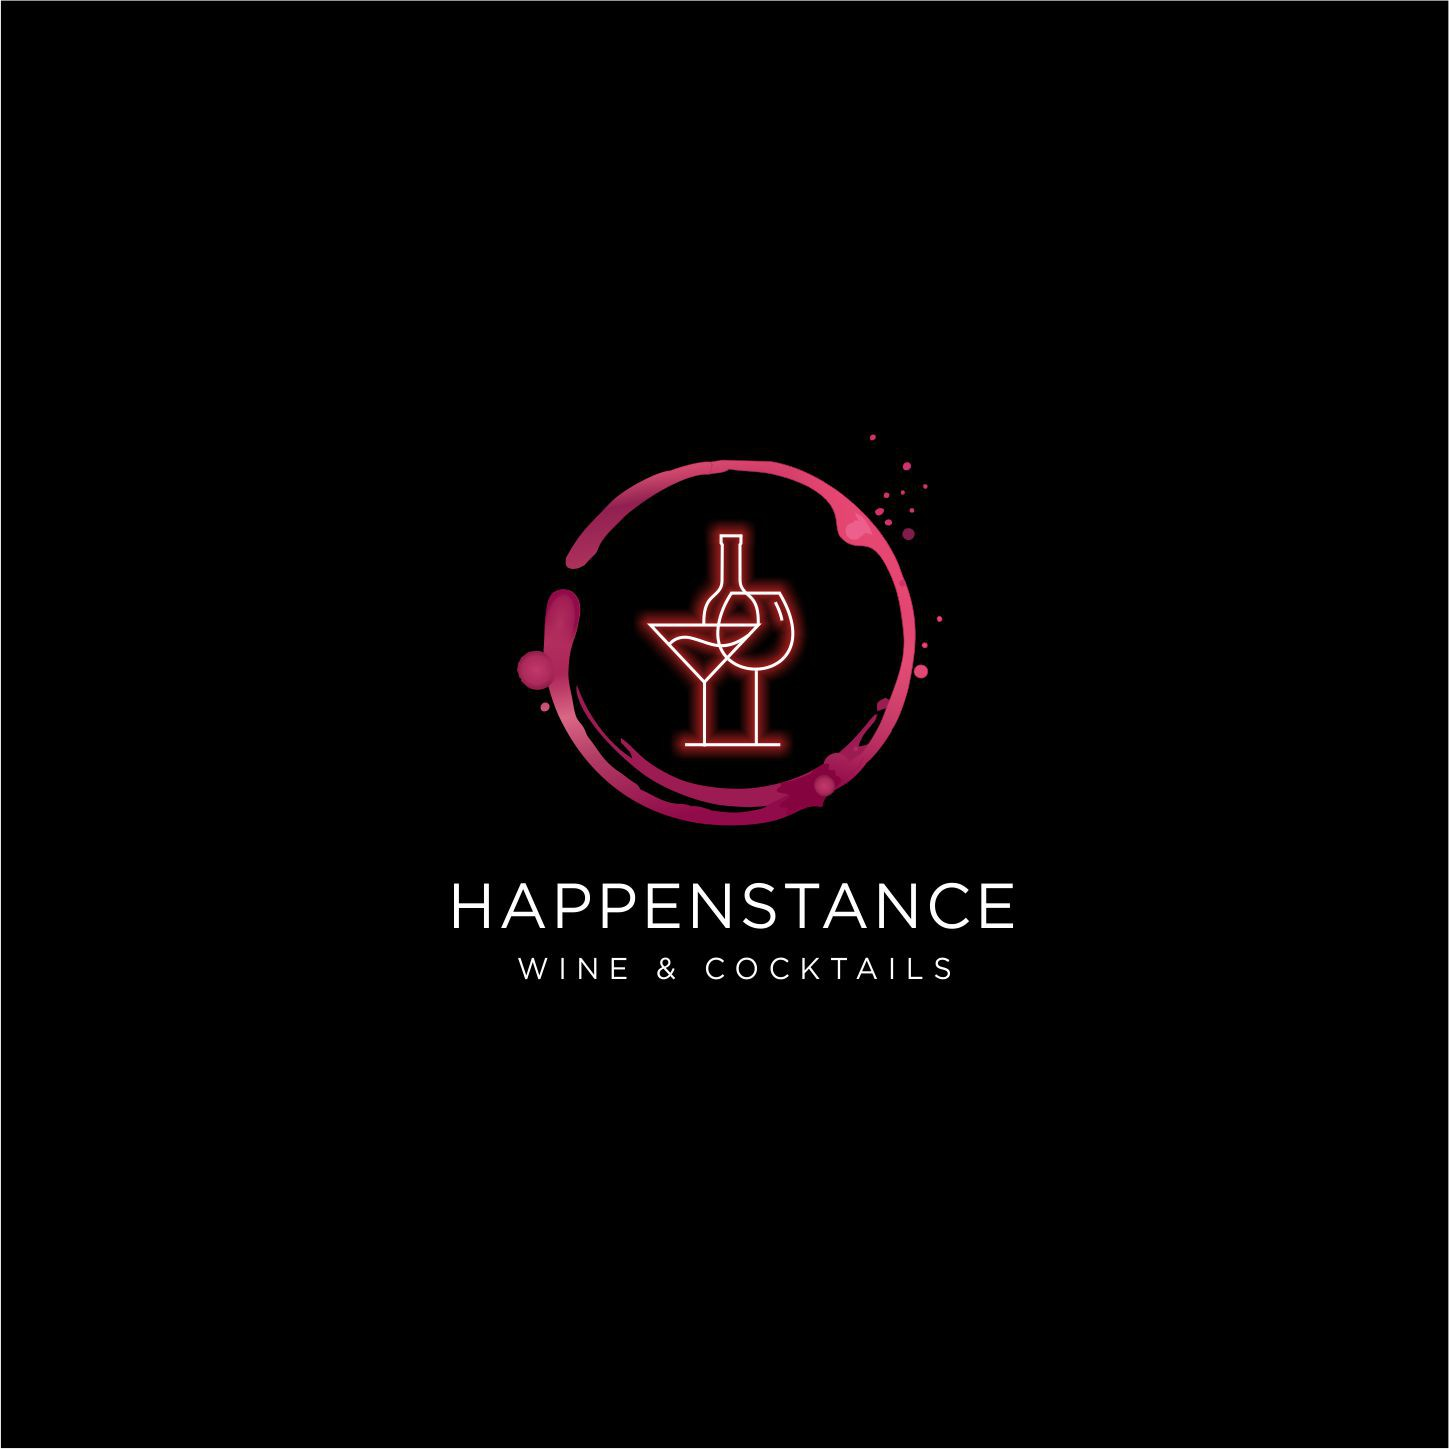 Captivating logo for a one of a kind, posh meets eccentric, suburban self-serve wine/cocktail bar